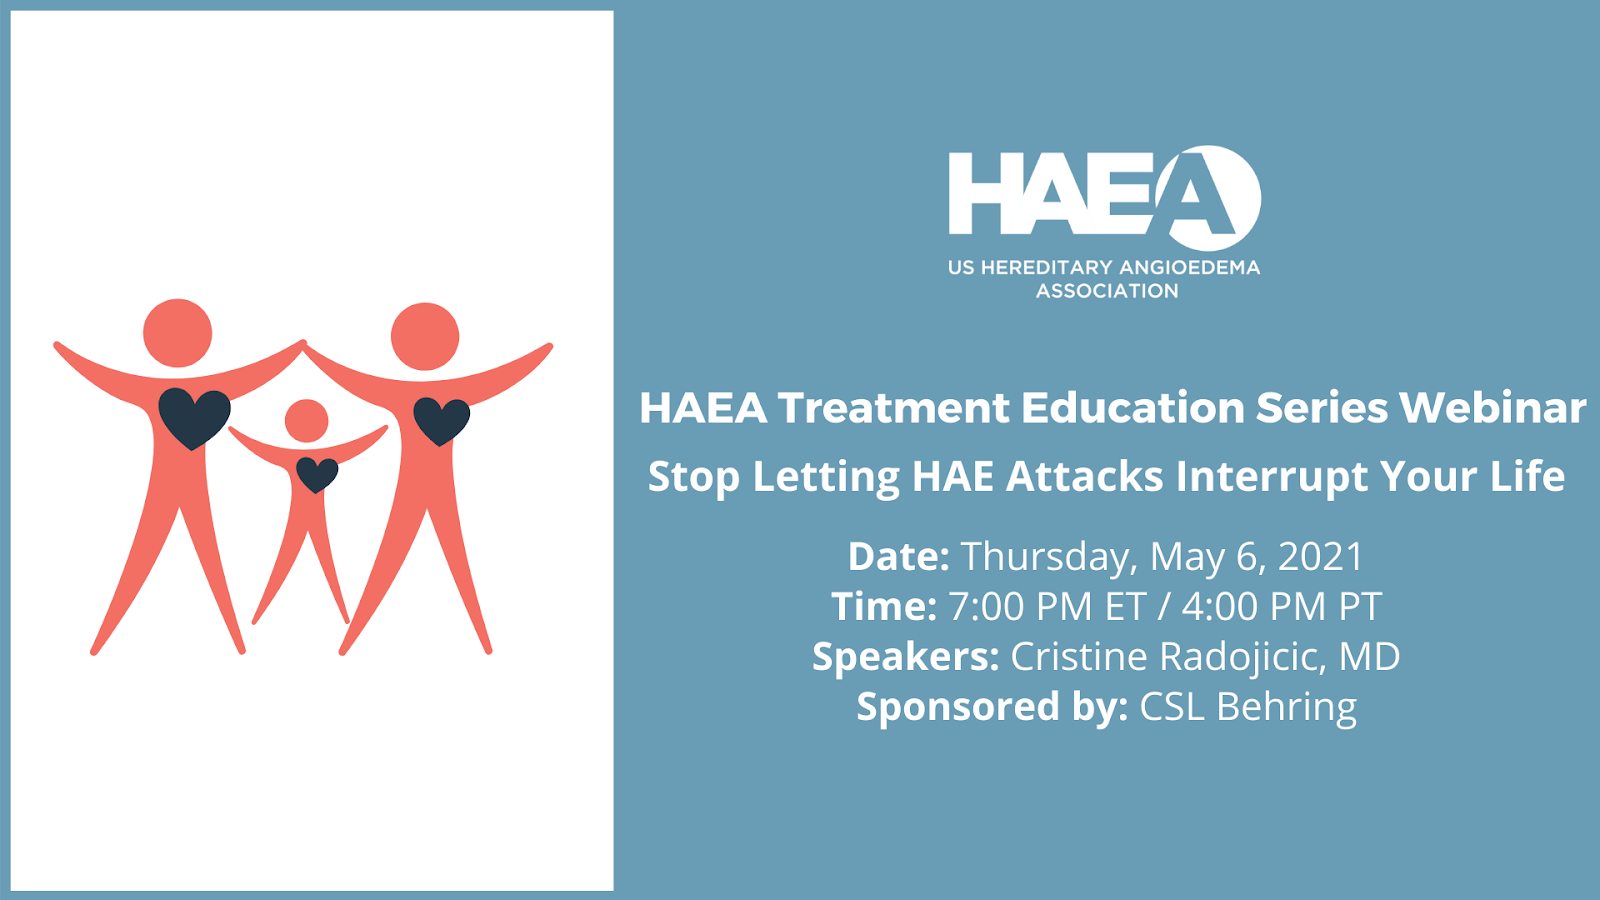 HAEA Treatment Education Series Webinar: Stop Letting HAE Attacks Interrupt Your Life